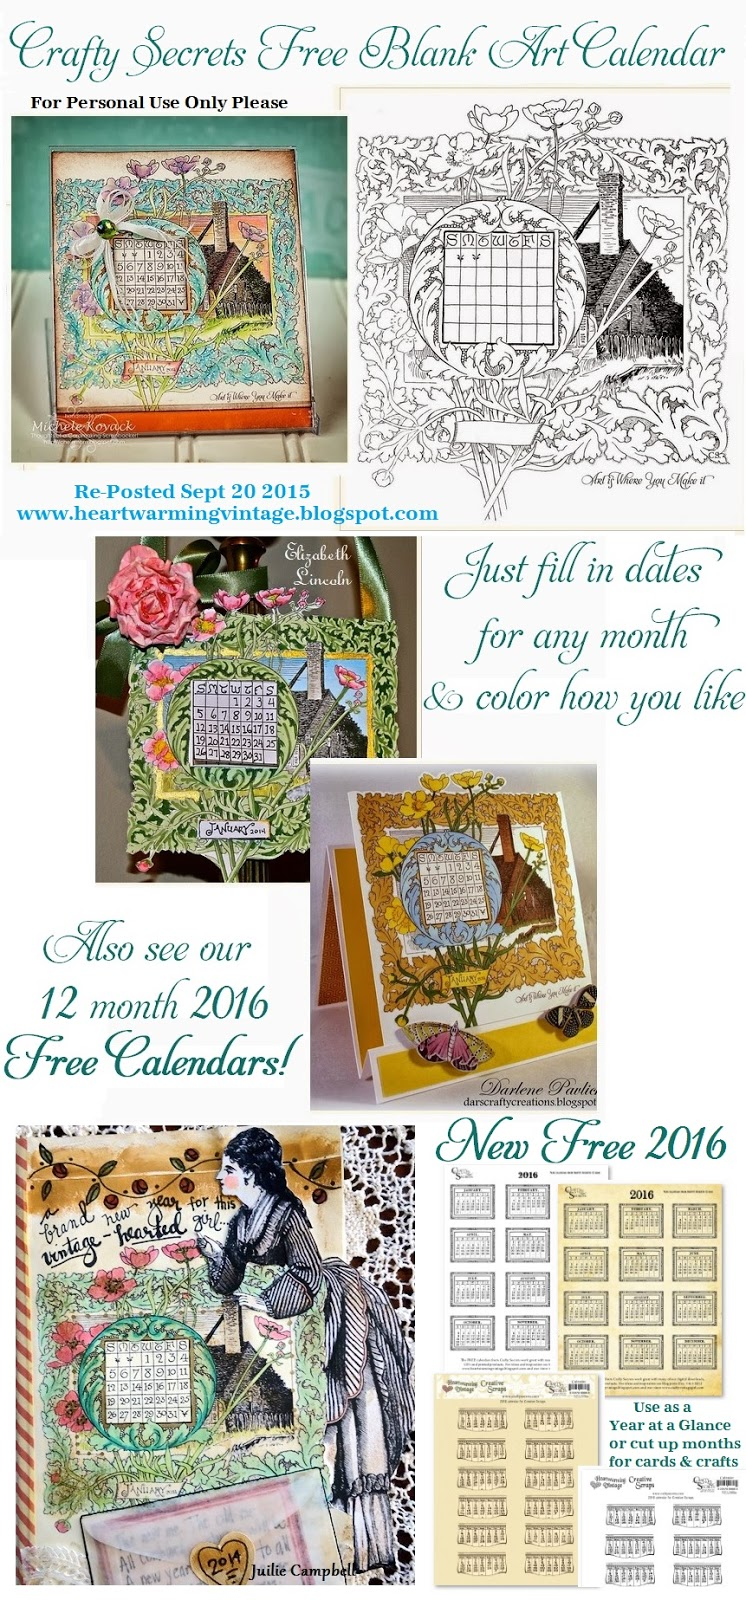 Art Calendar Template : Crafty secrets heartwarming vintage ideas and tips free